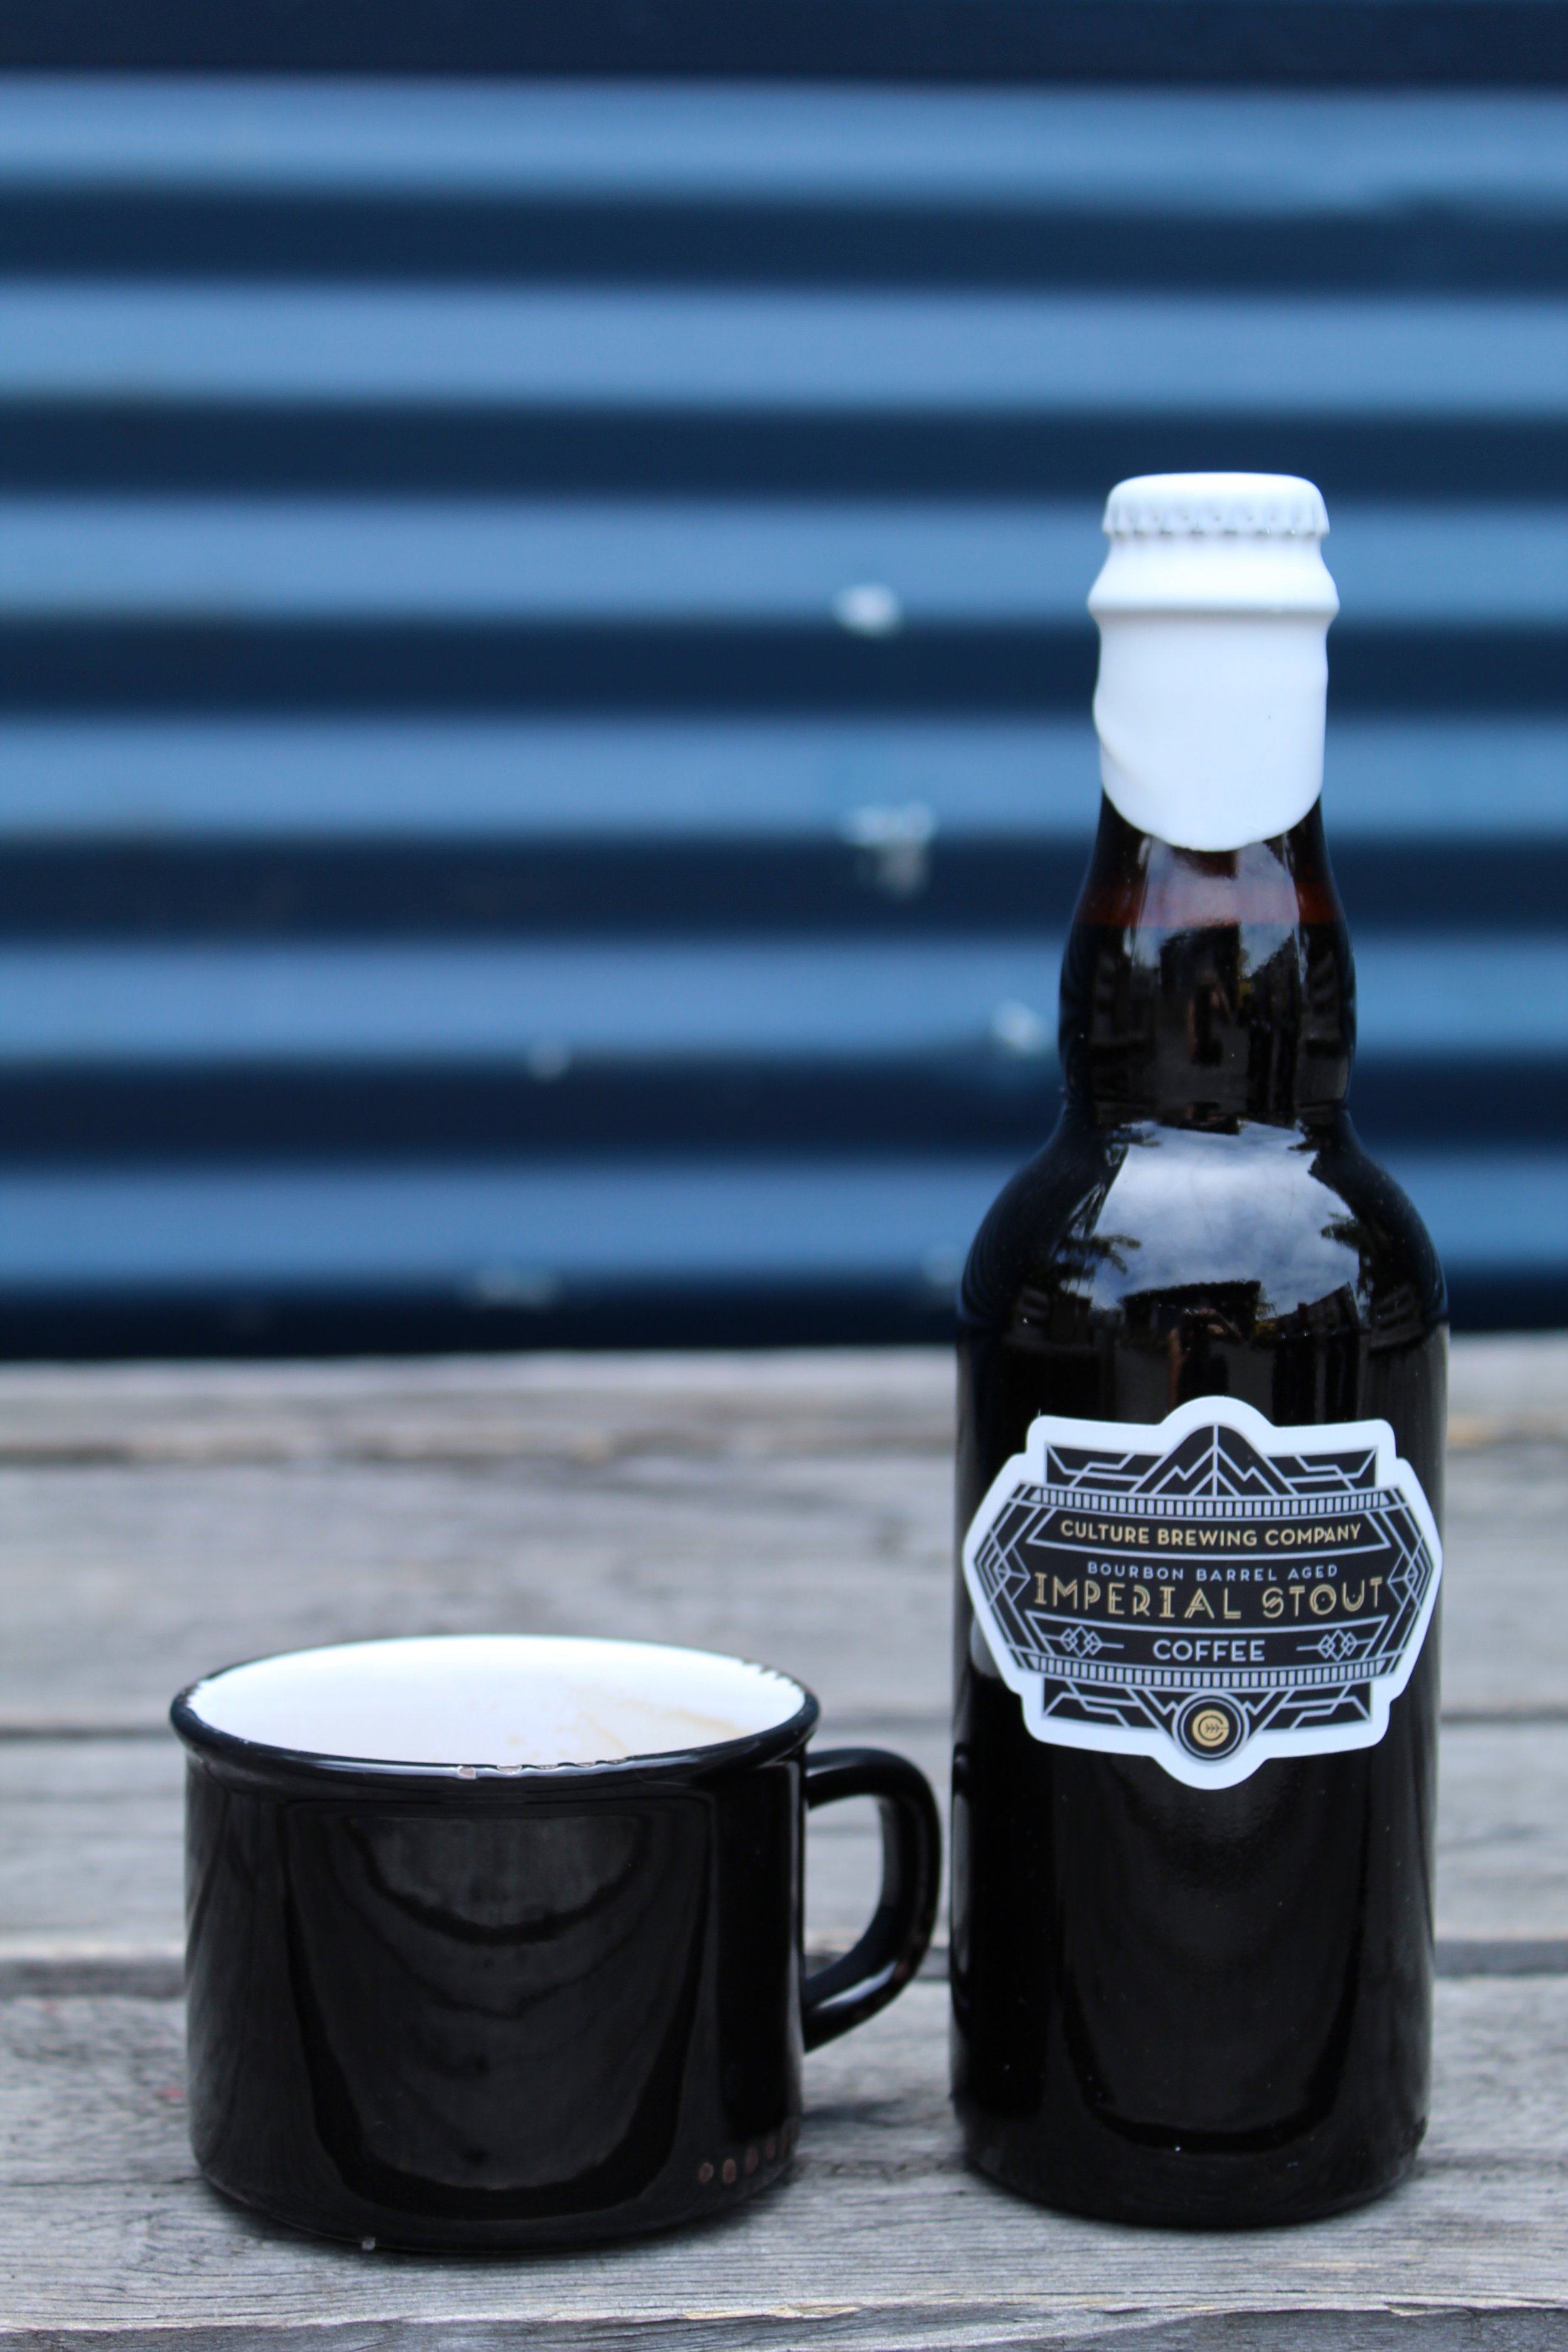 Coffee Imperial Stout